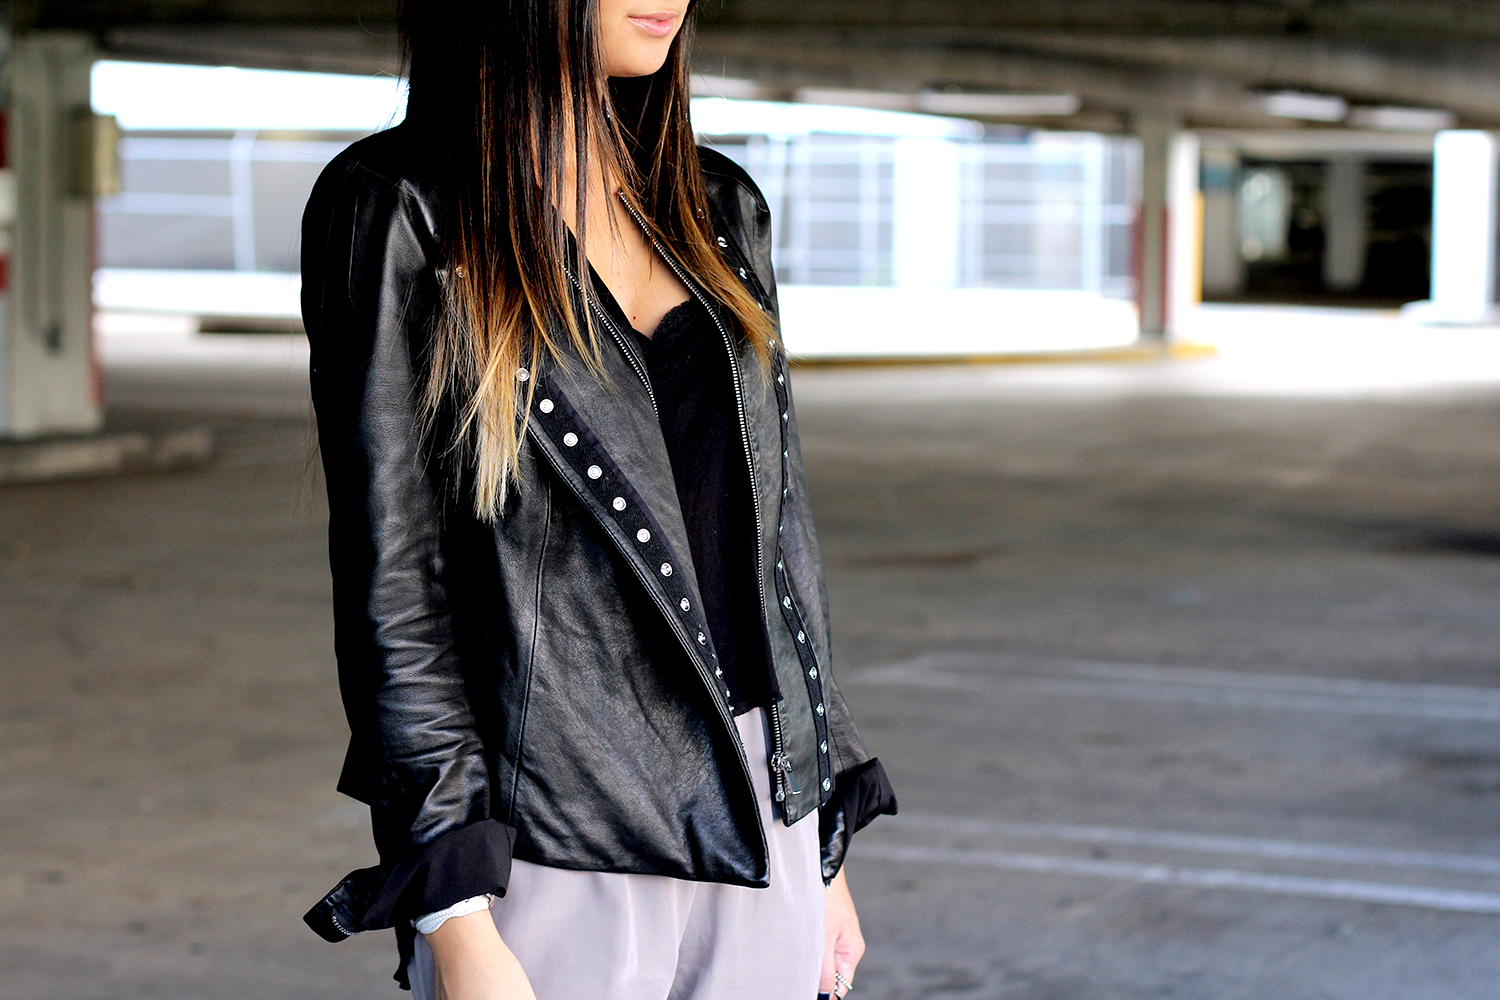 Leather Jacket Lovin'. - The Material Girl | Macarena Ferreira | Personal Style Blogger